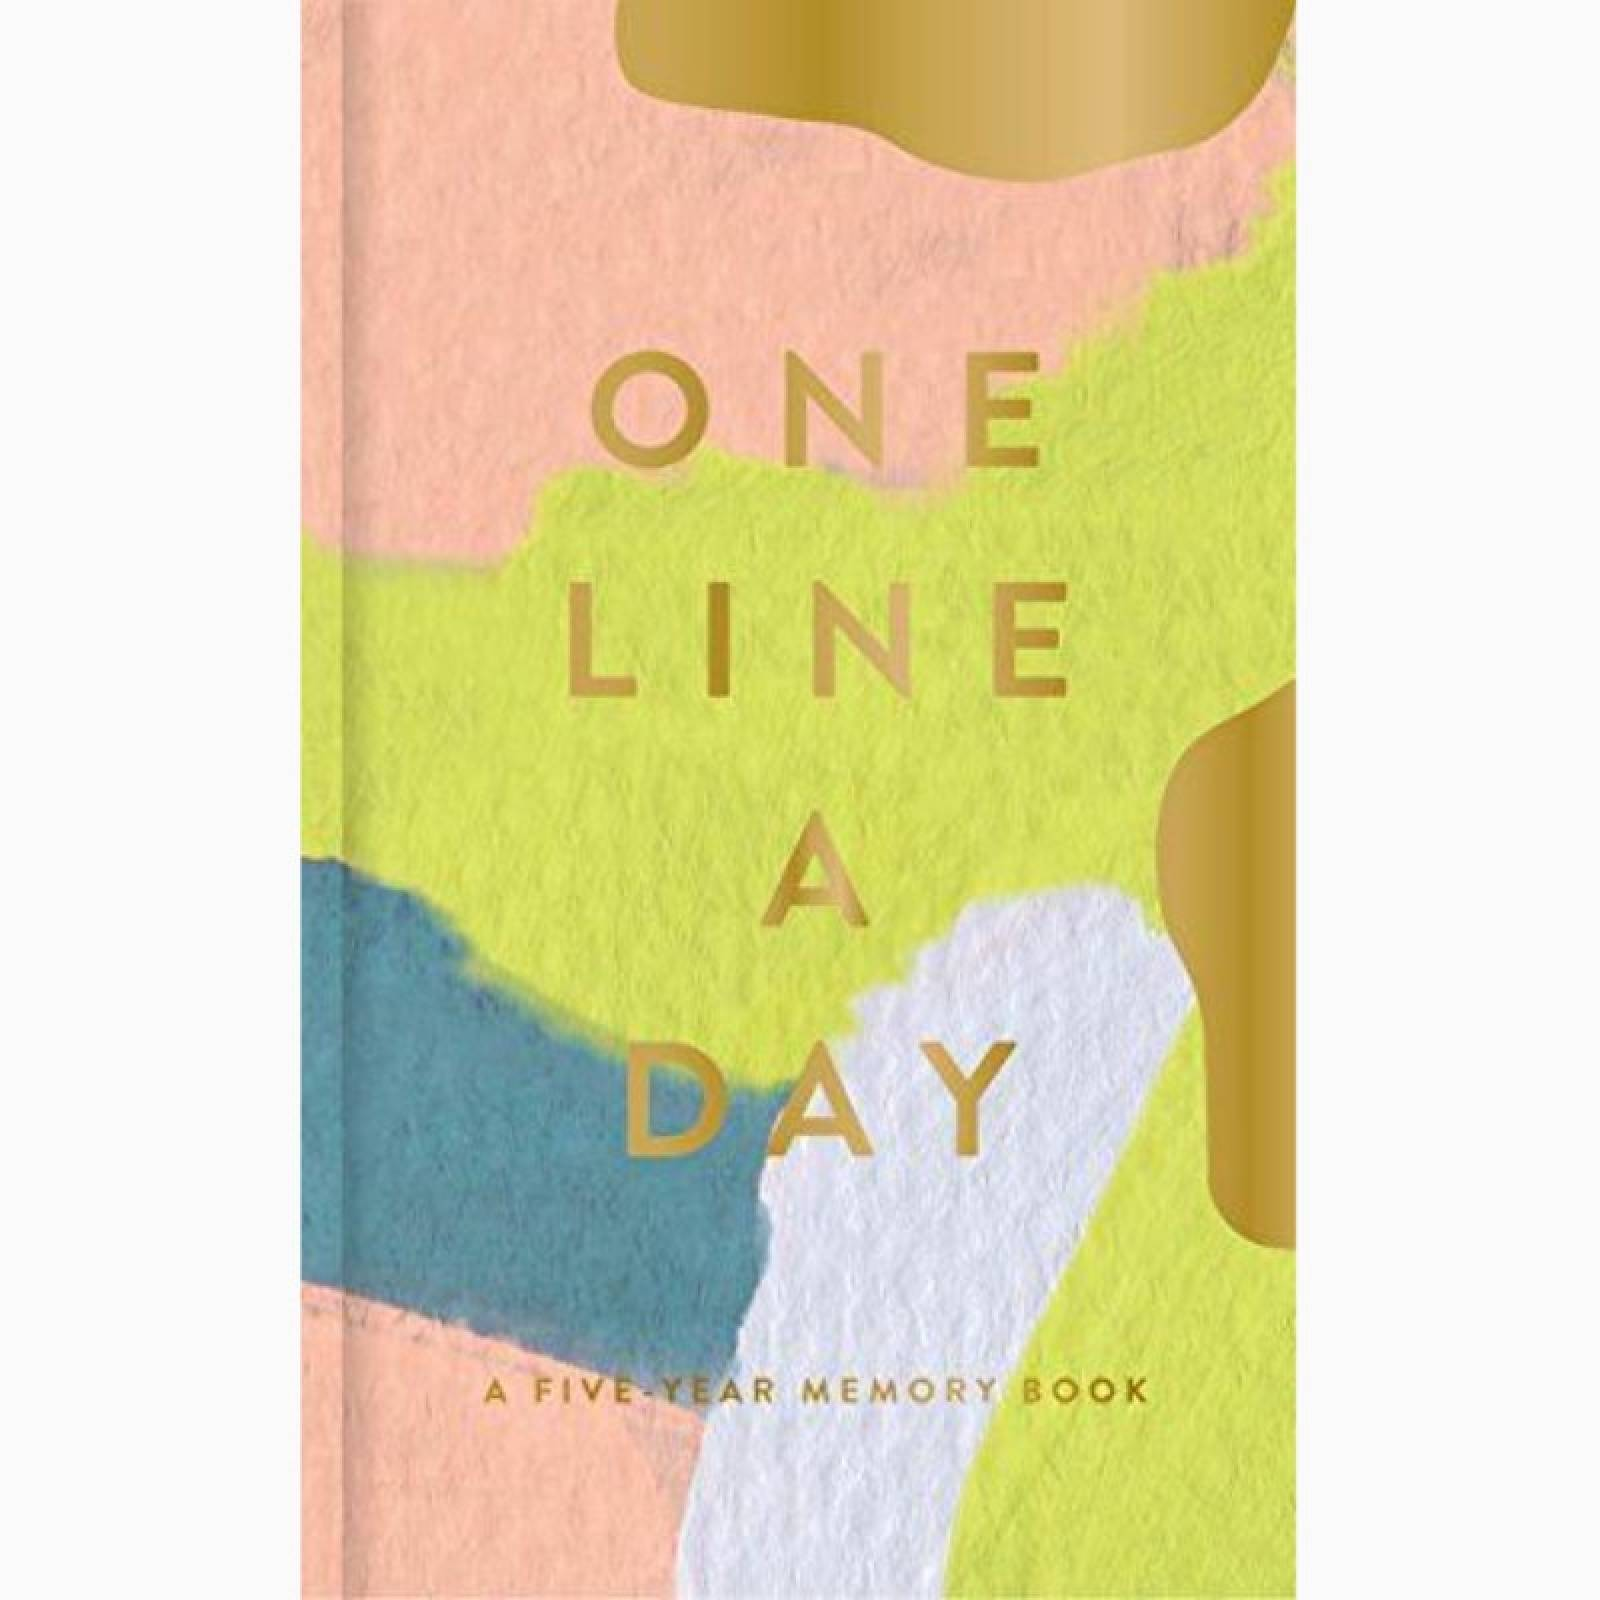 Moglea One Line A Day: Five Year Memory Book